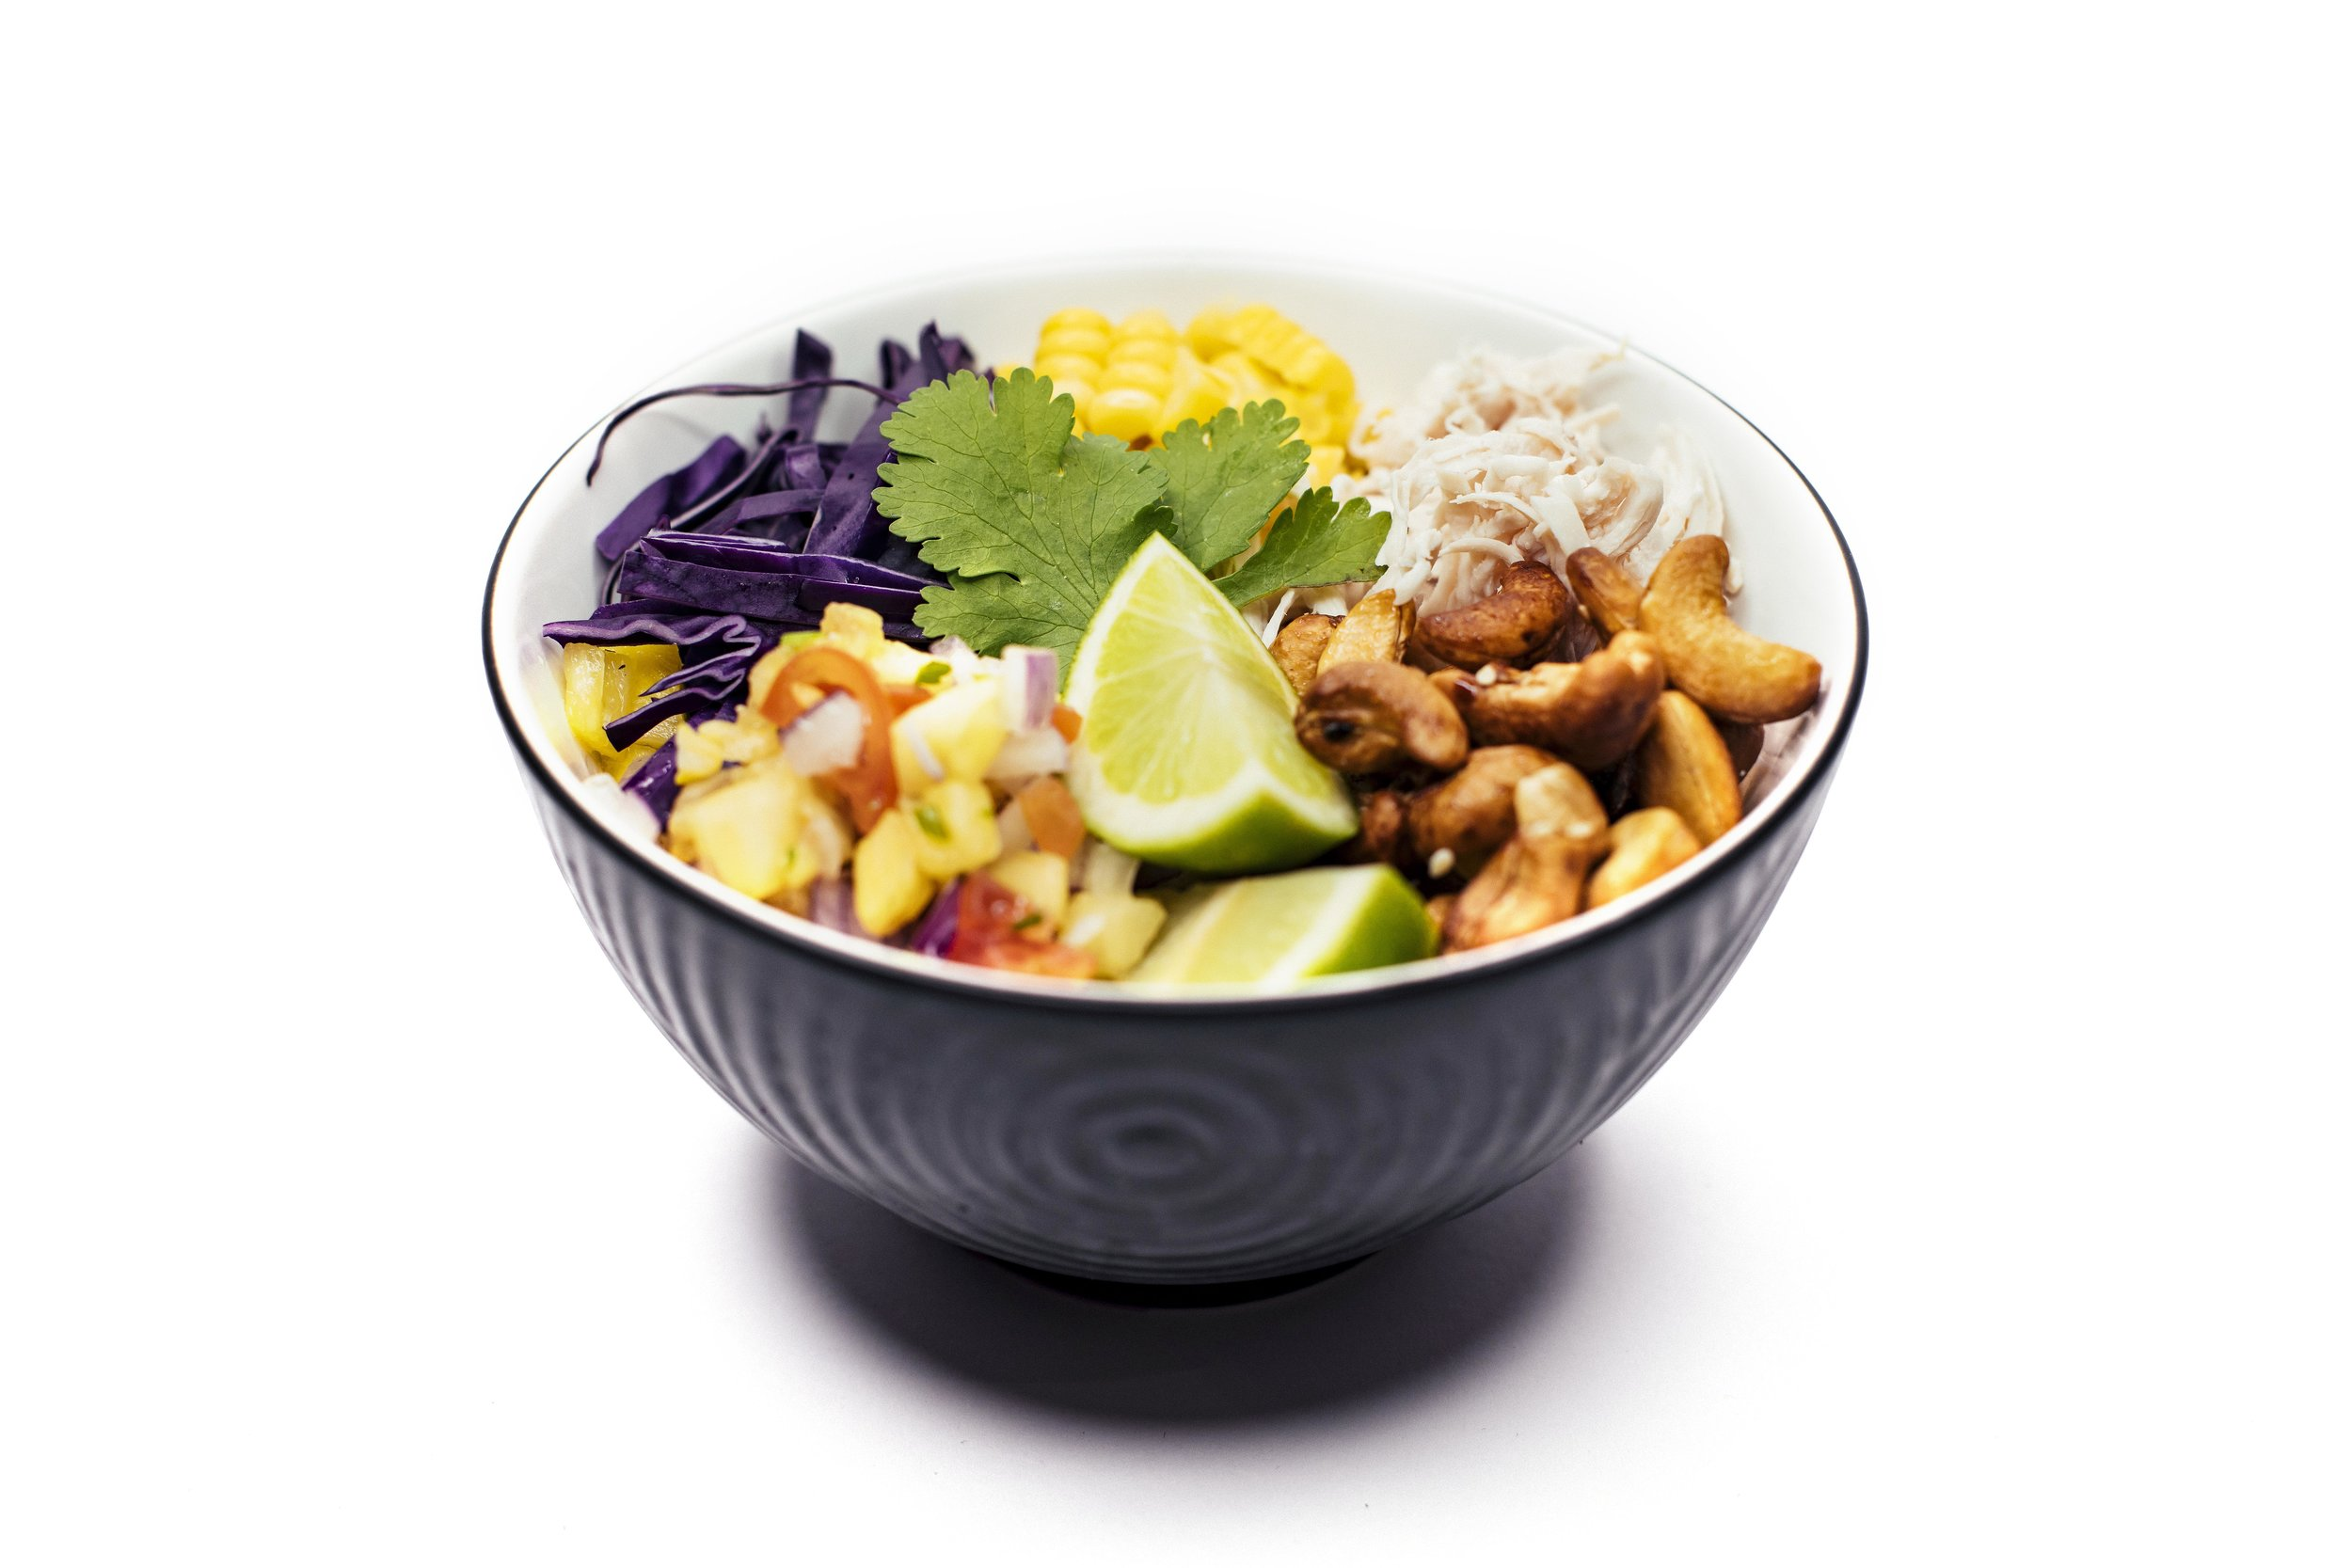 CASHEW CHICKEN BOWL - Shredded Chicken, Rice, Sweet Corn, Pineapple Salsa, Quarter Lime, Honey Sesame Cashews, Coriander, Creamy Togorashi Sauce